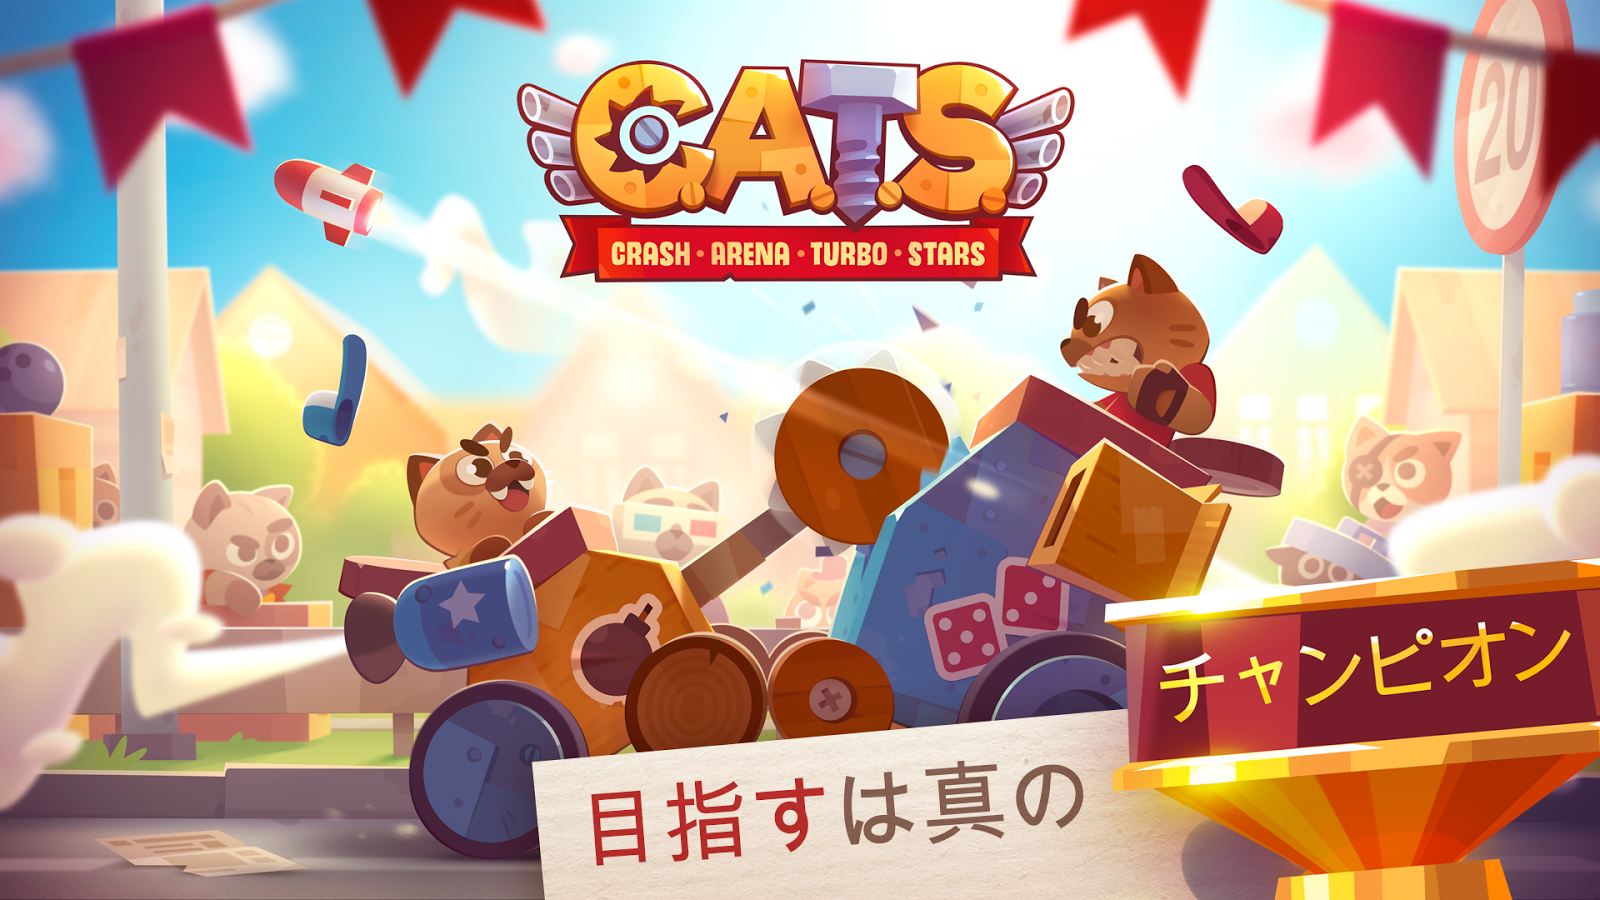 CATS: Crash Arena Turbo Stars- スクリーンショット